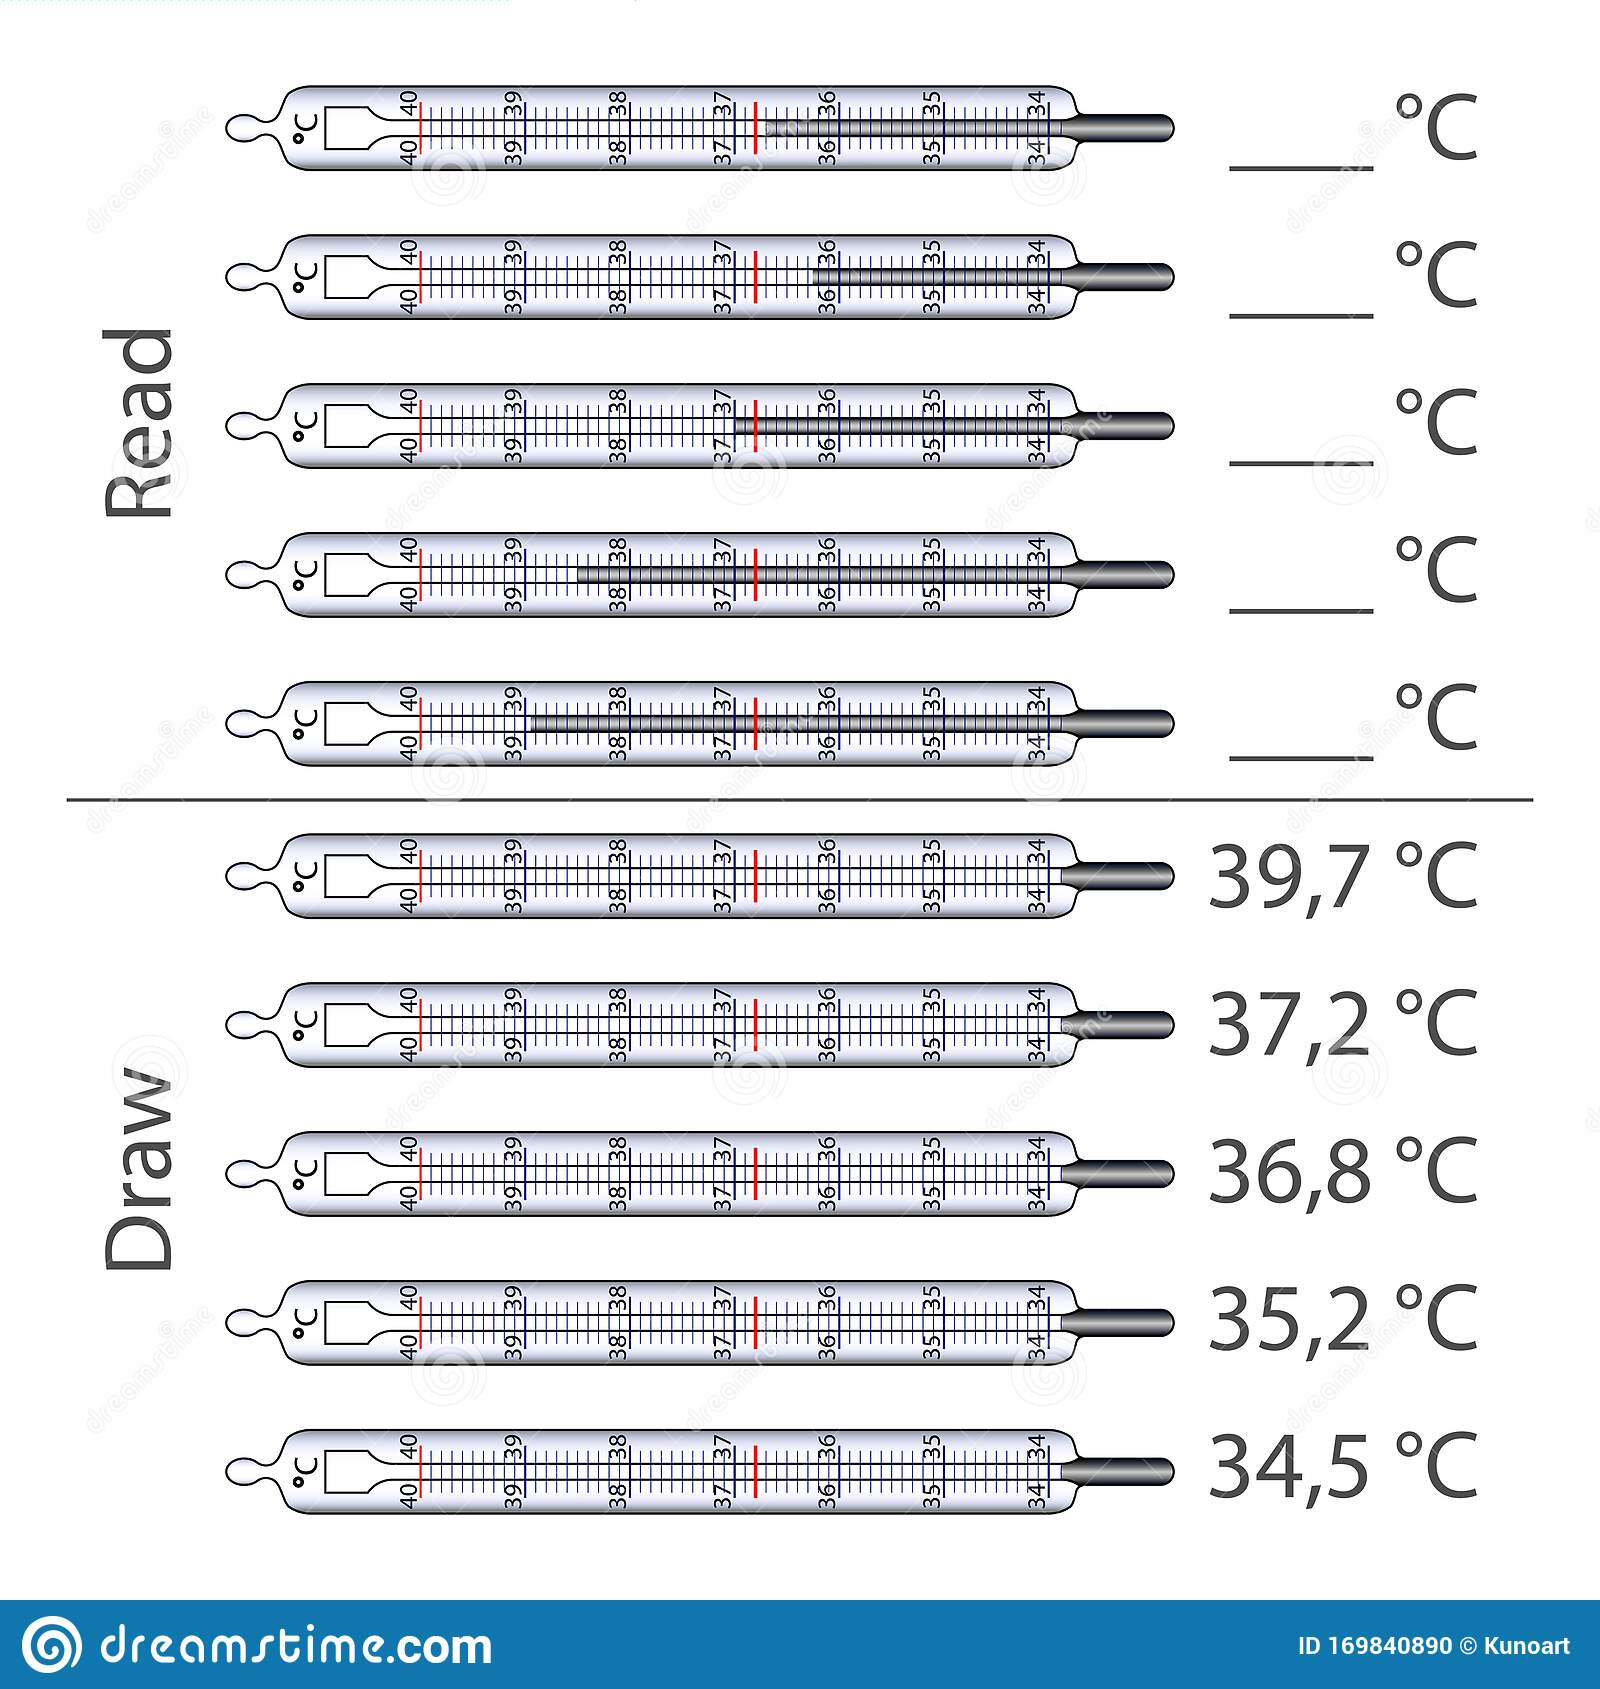 Worksheet To Study The Scale Of Mercury Thermometer Stock